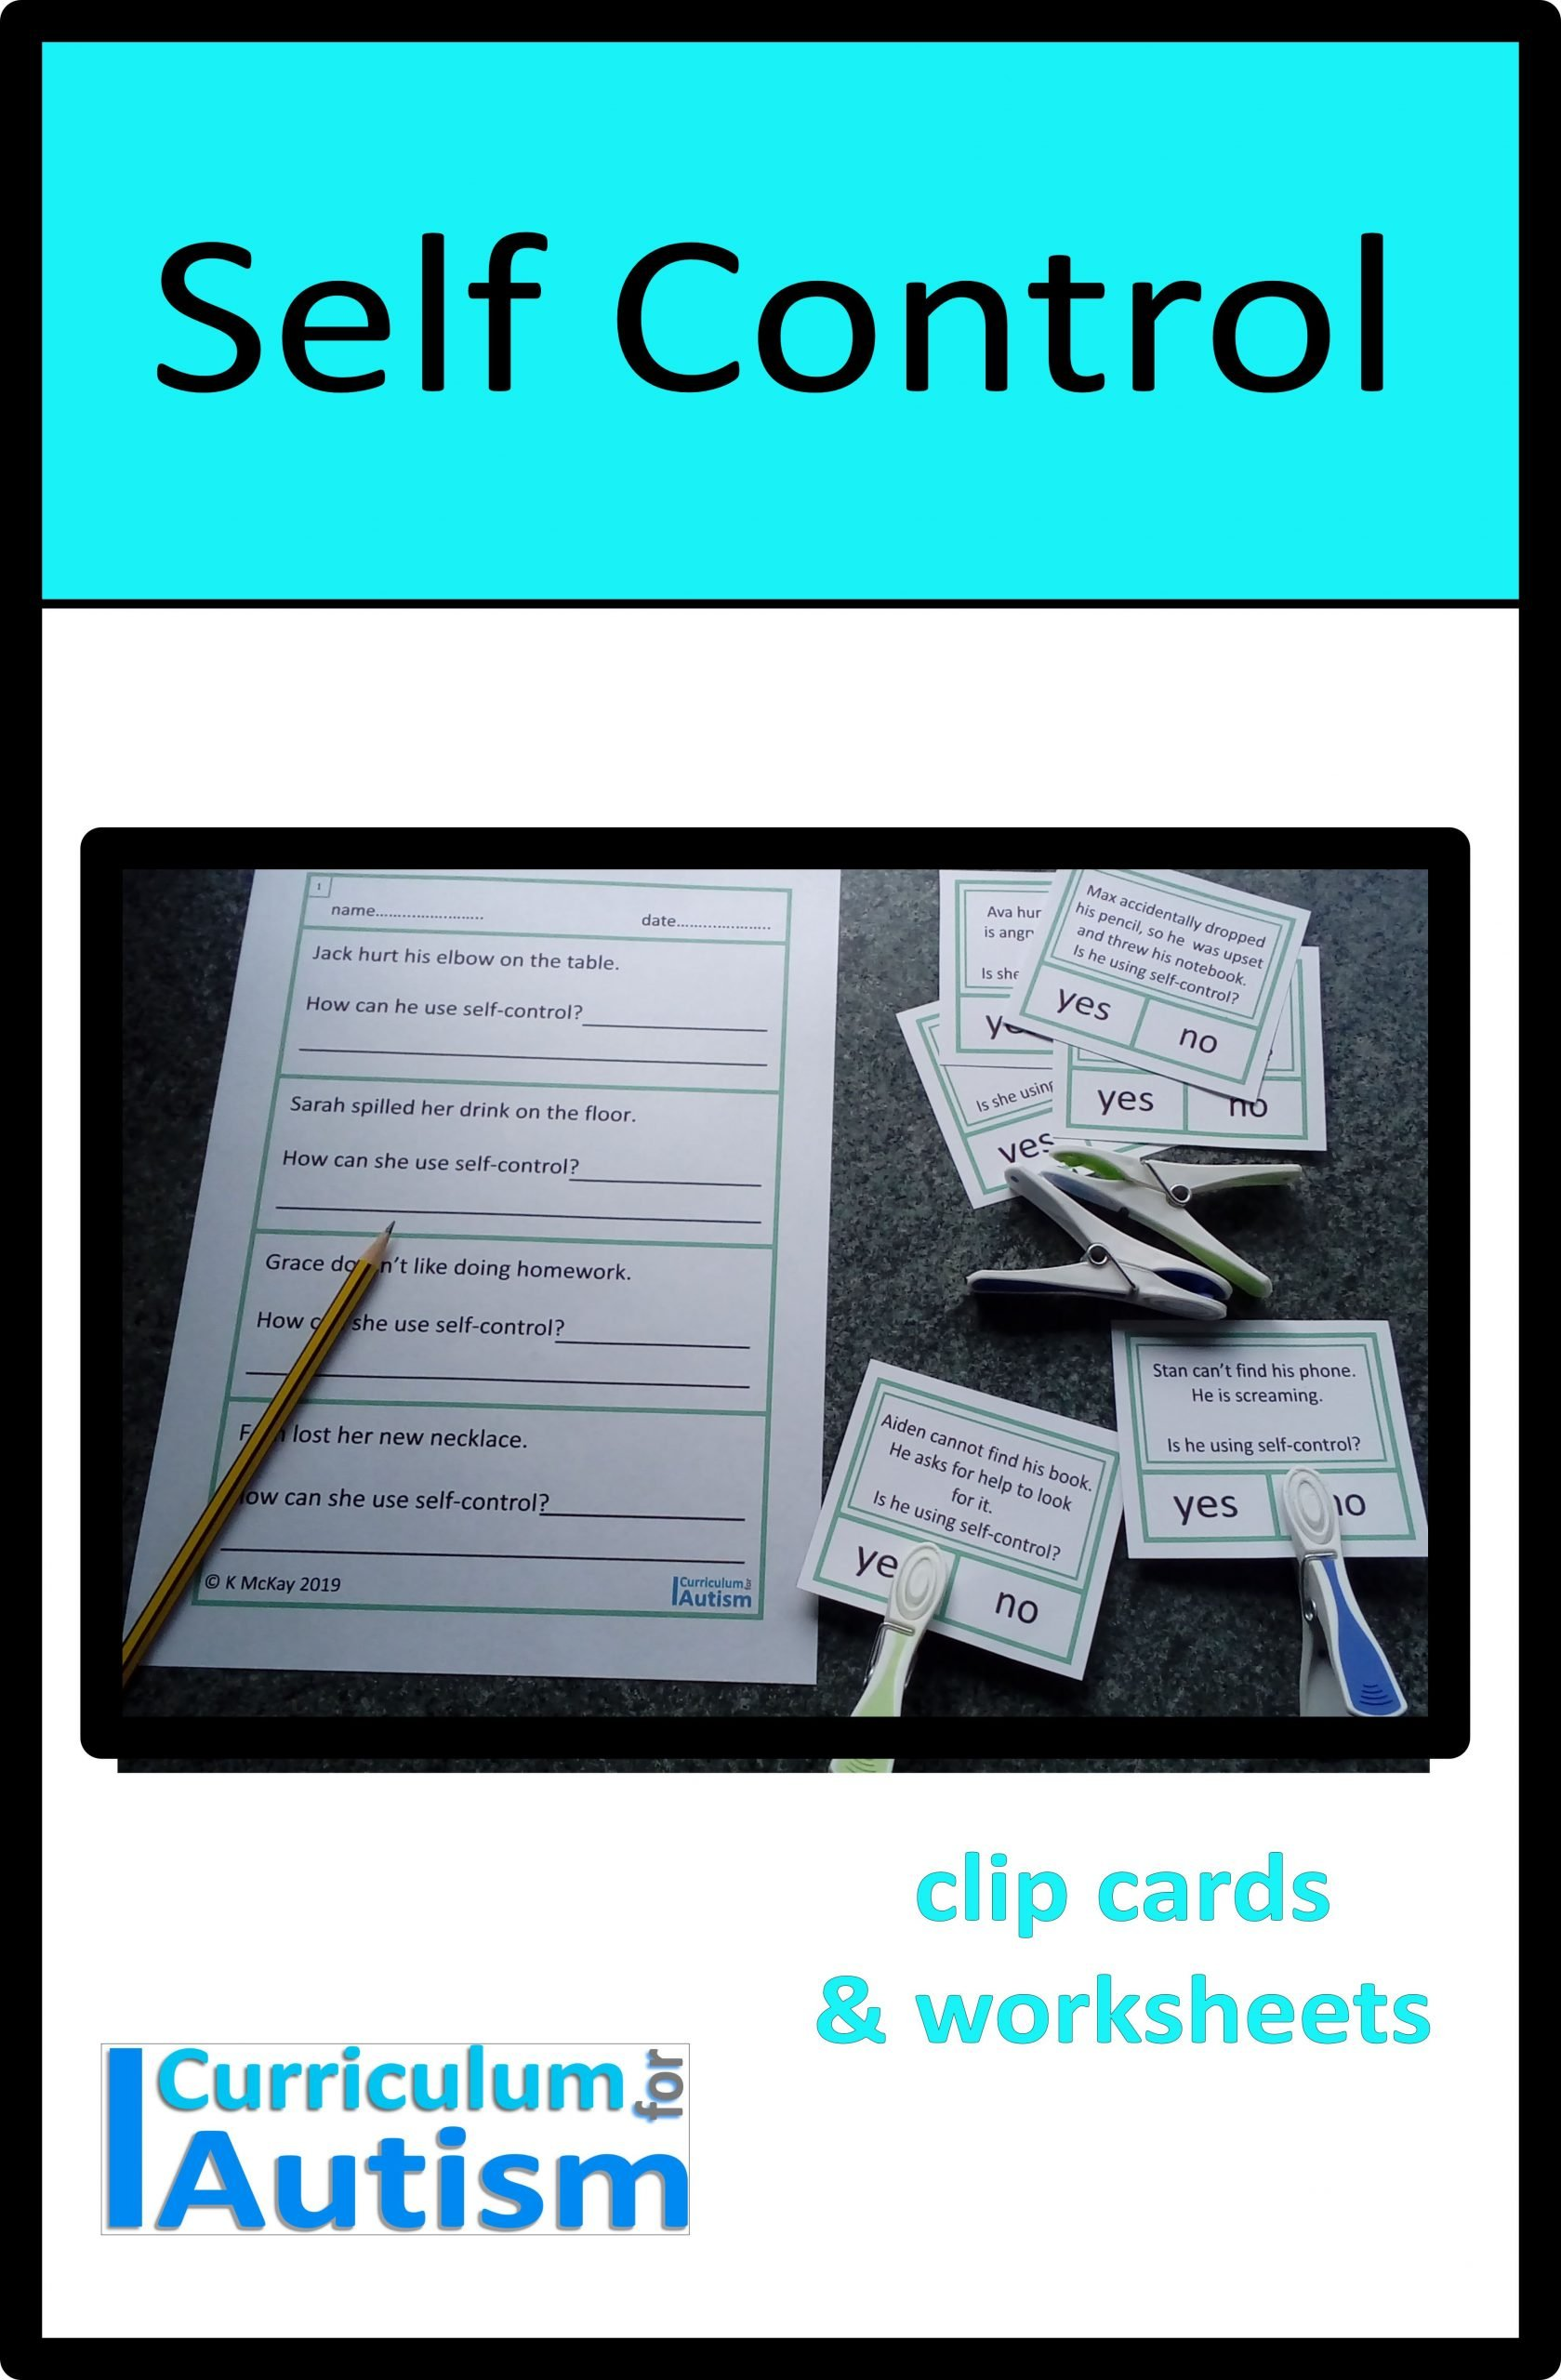 Self Control Worksheets Self Control Cards & Worksheets